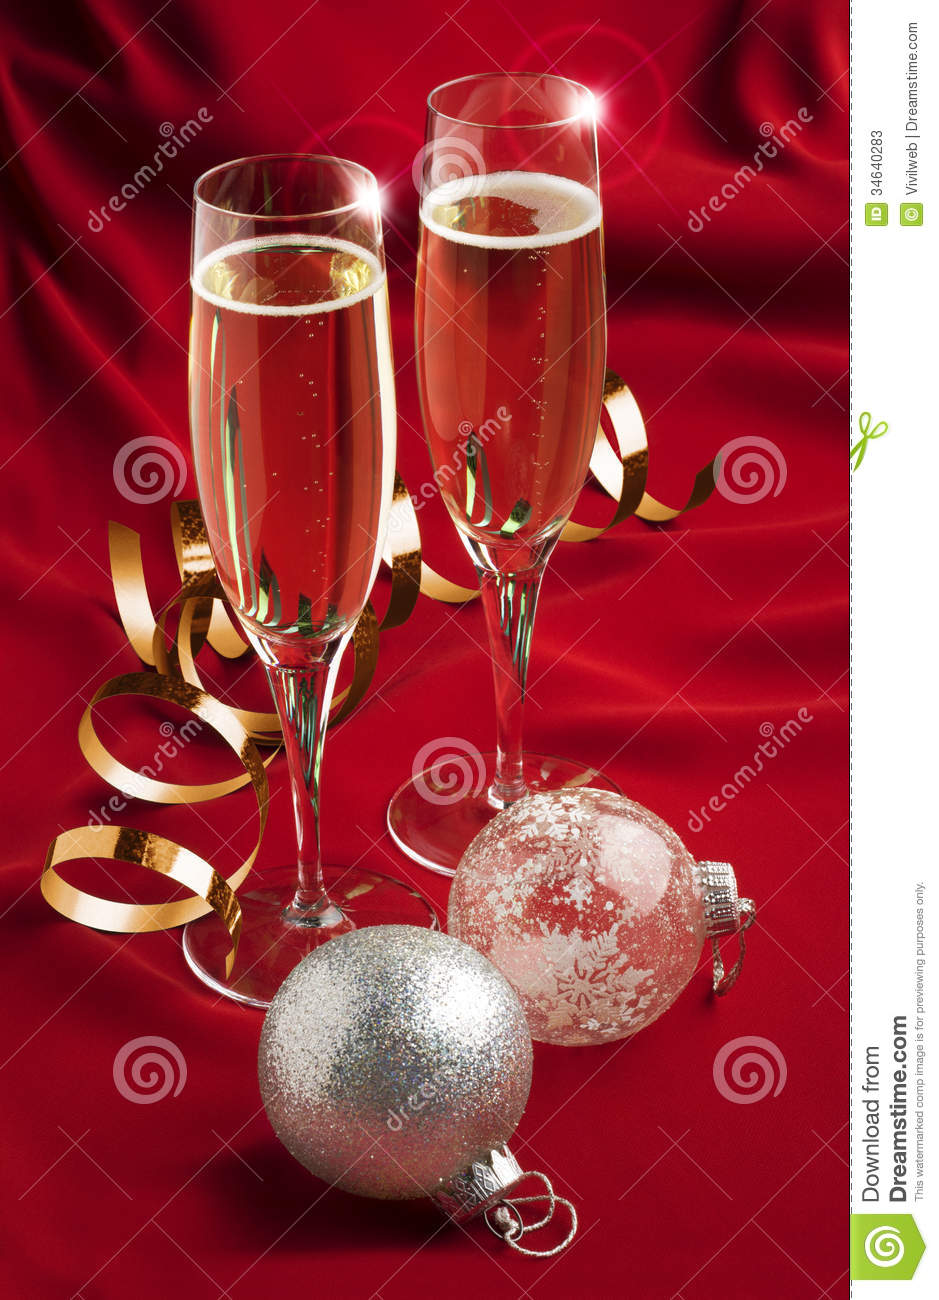 Christmas Toast Stock Photos - Image: 34640283